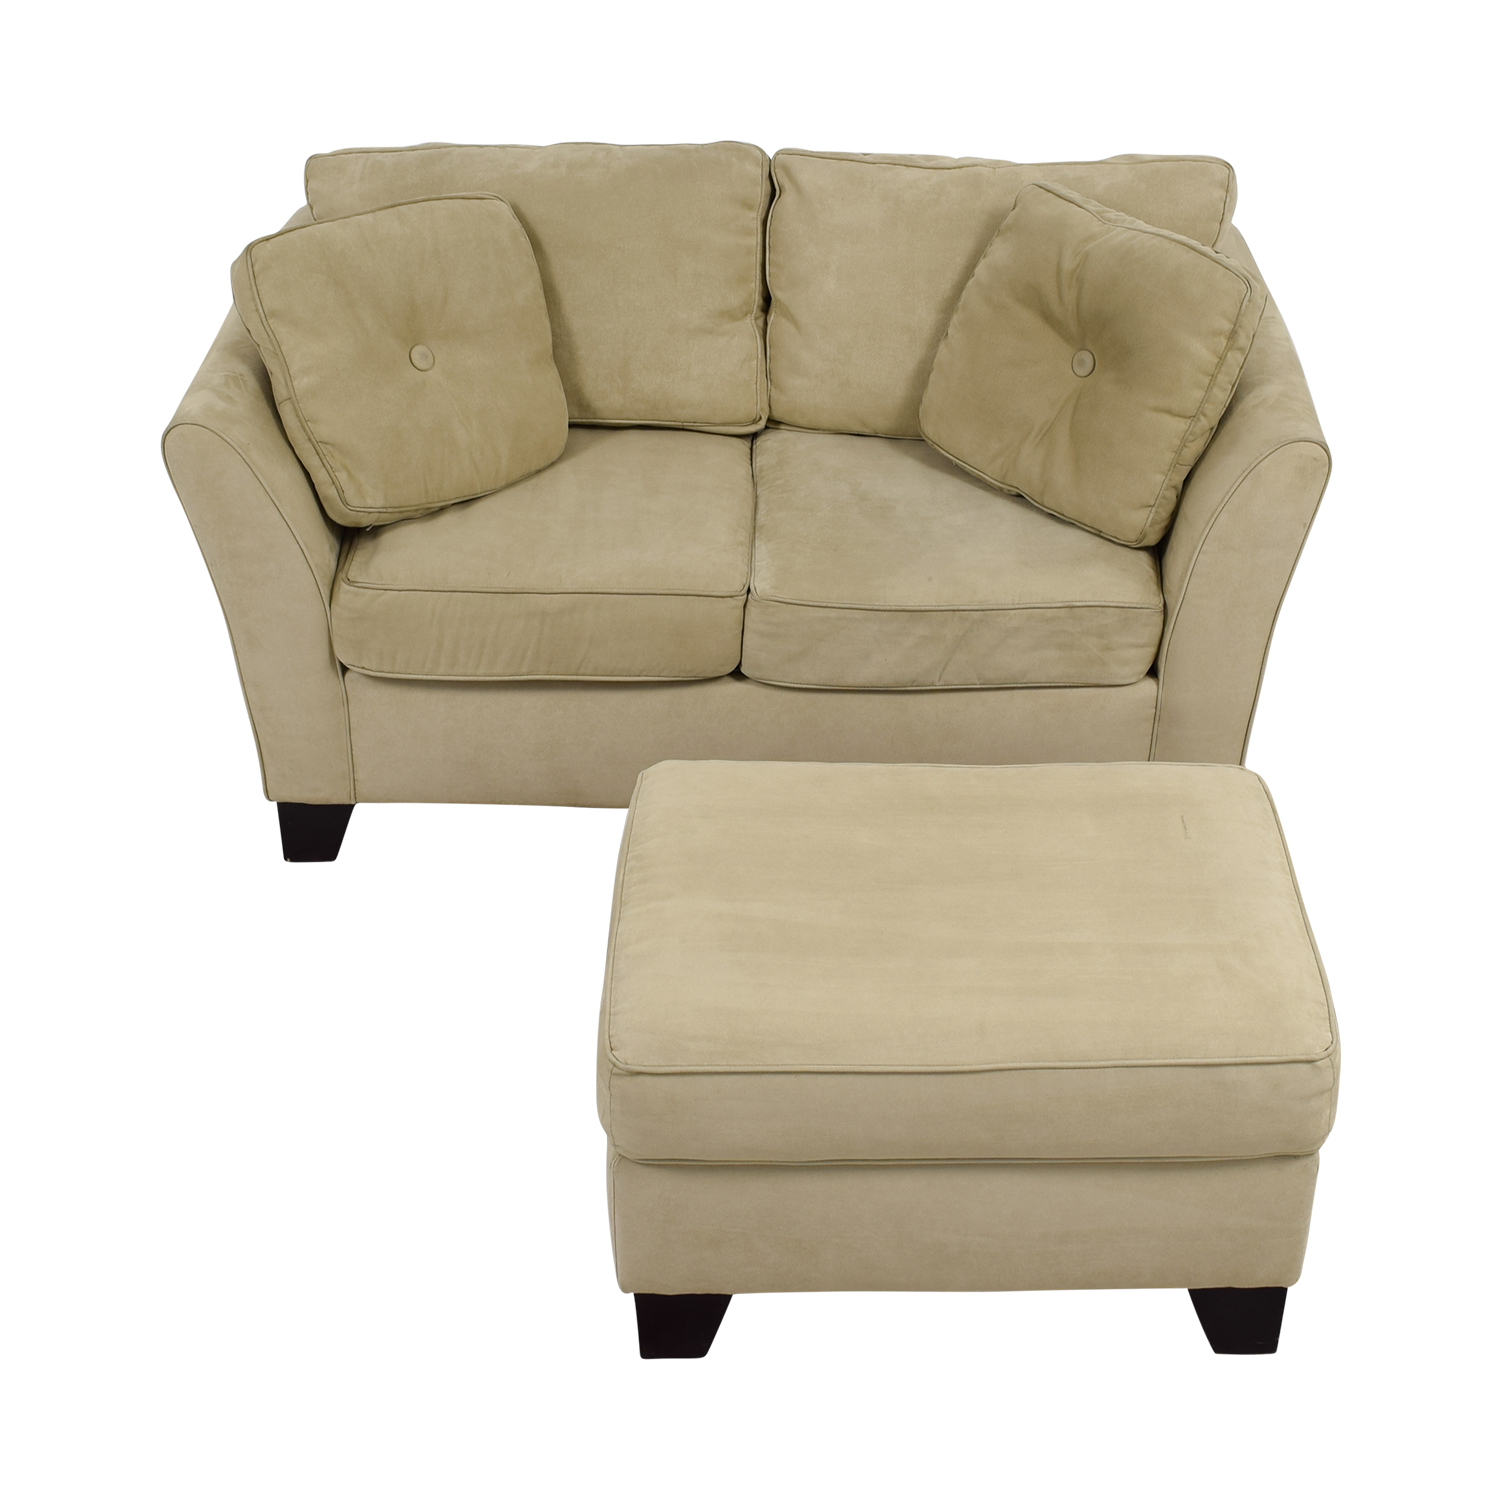 shop Macy's Tan Loveseat with Ottoman Macy's Sofas